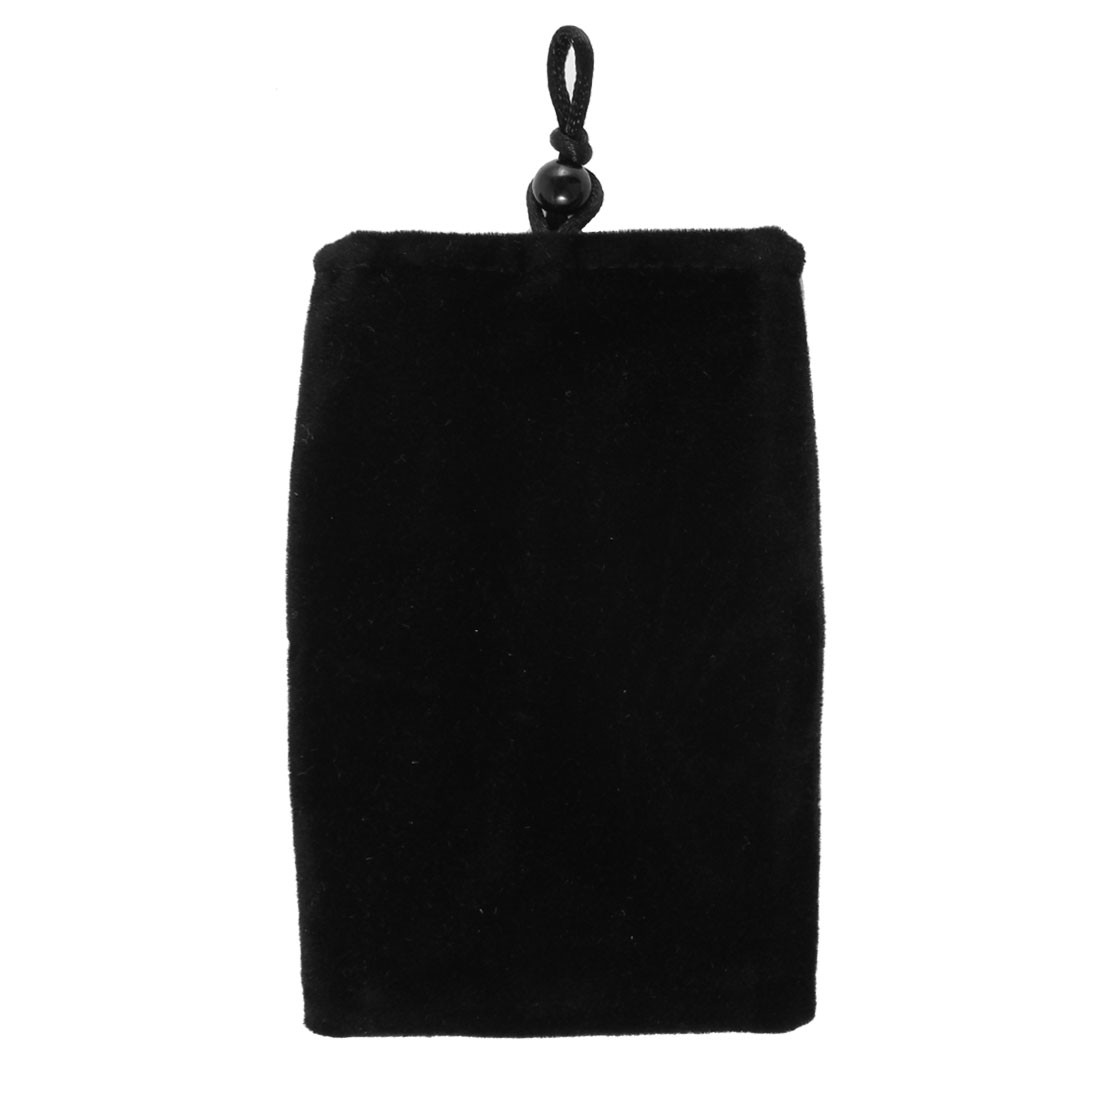 Black Velvet Universal Pouch Pocket Cover Sleeve Case for Mobile Phone